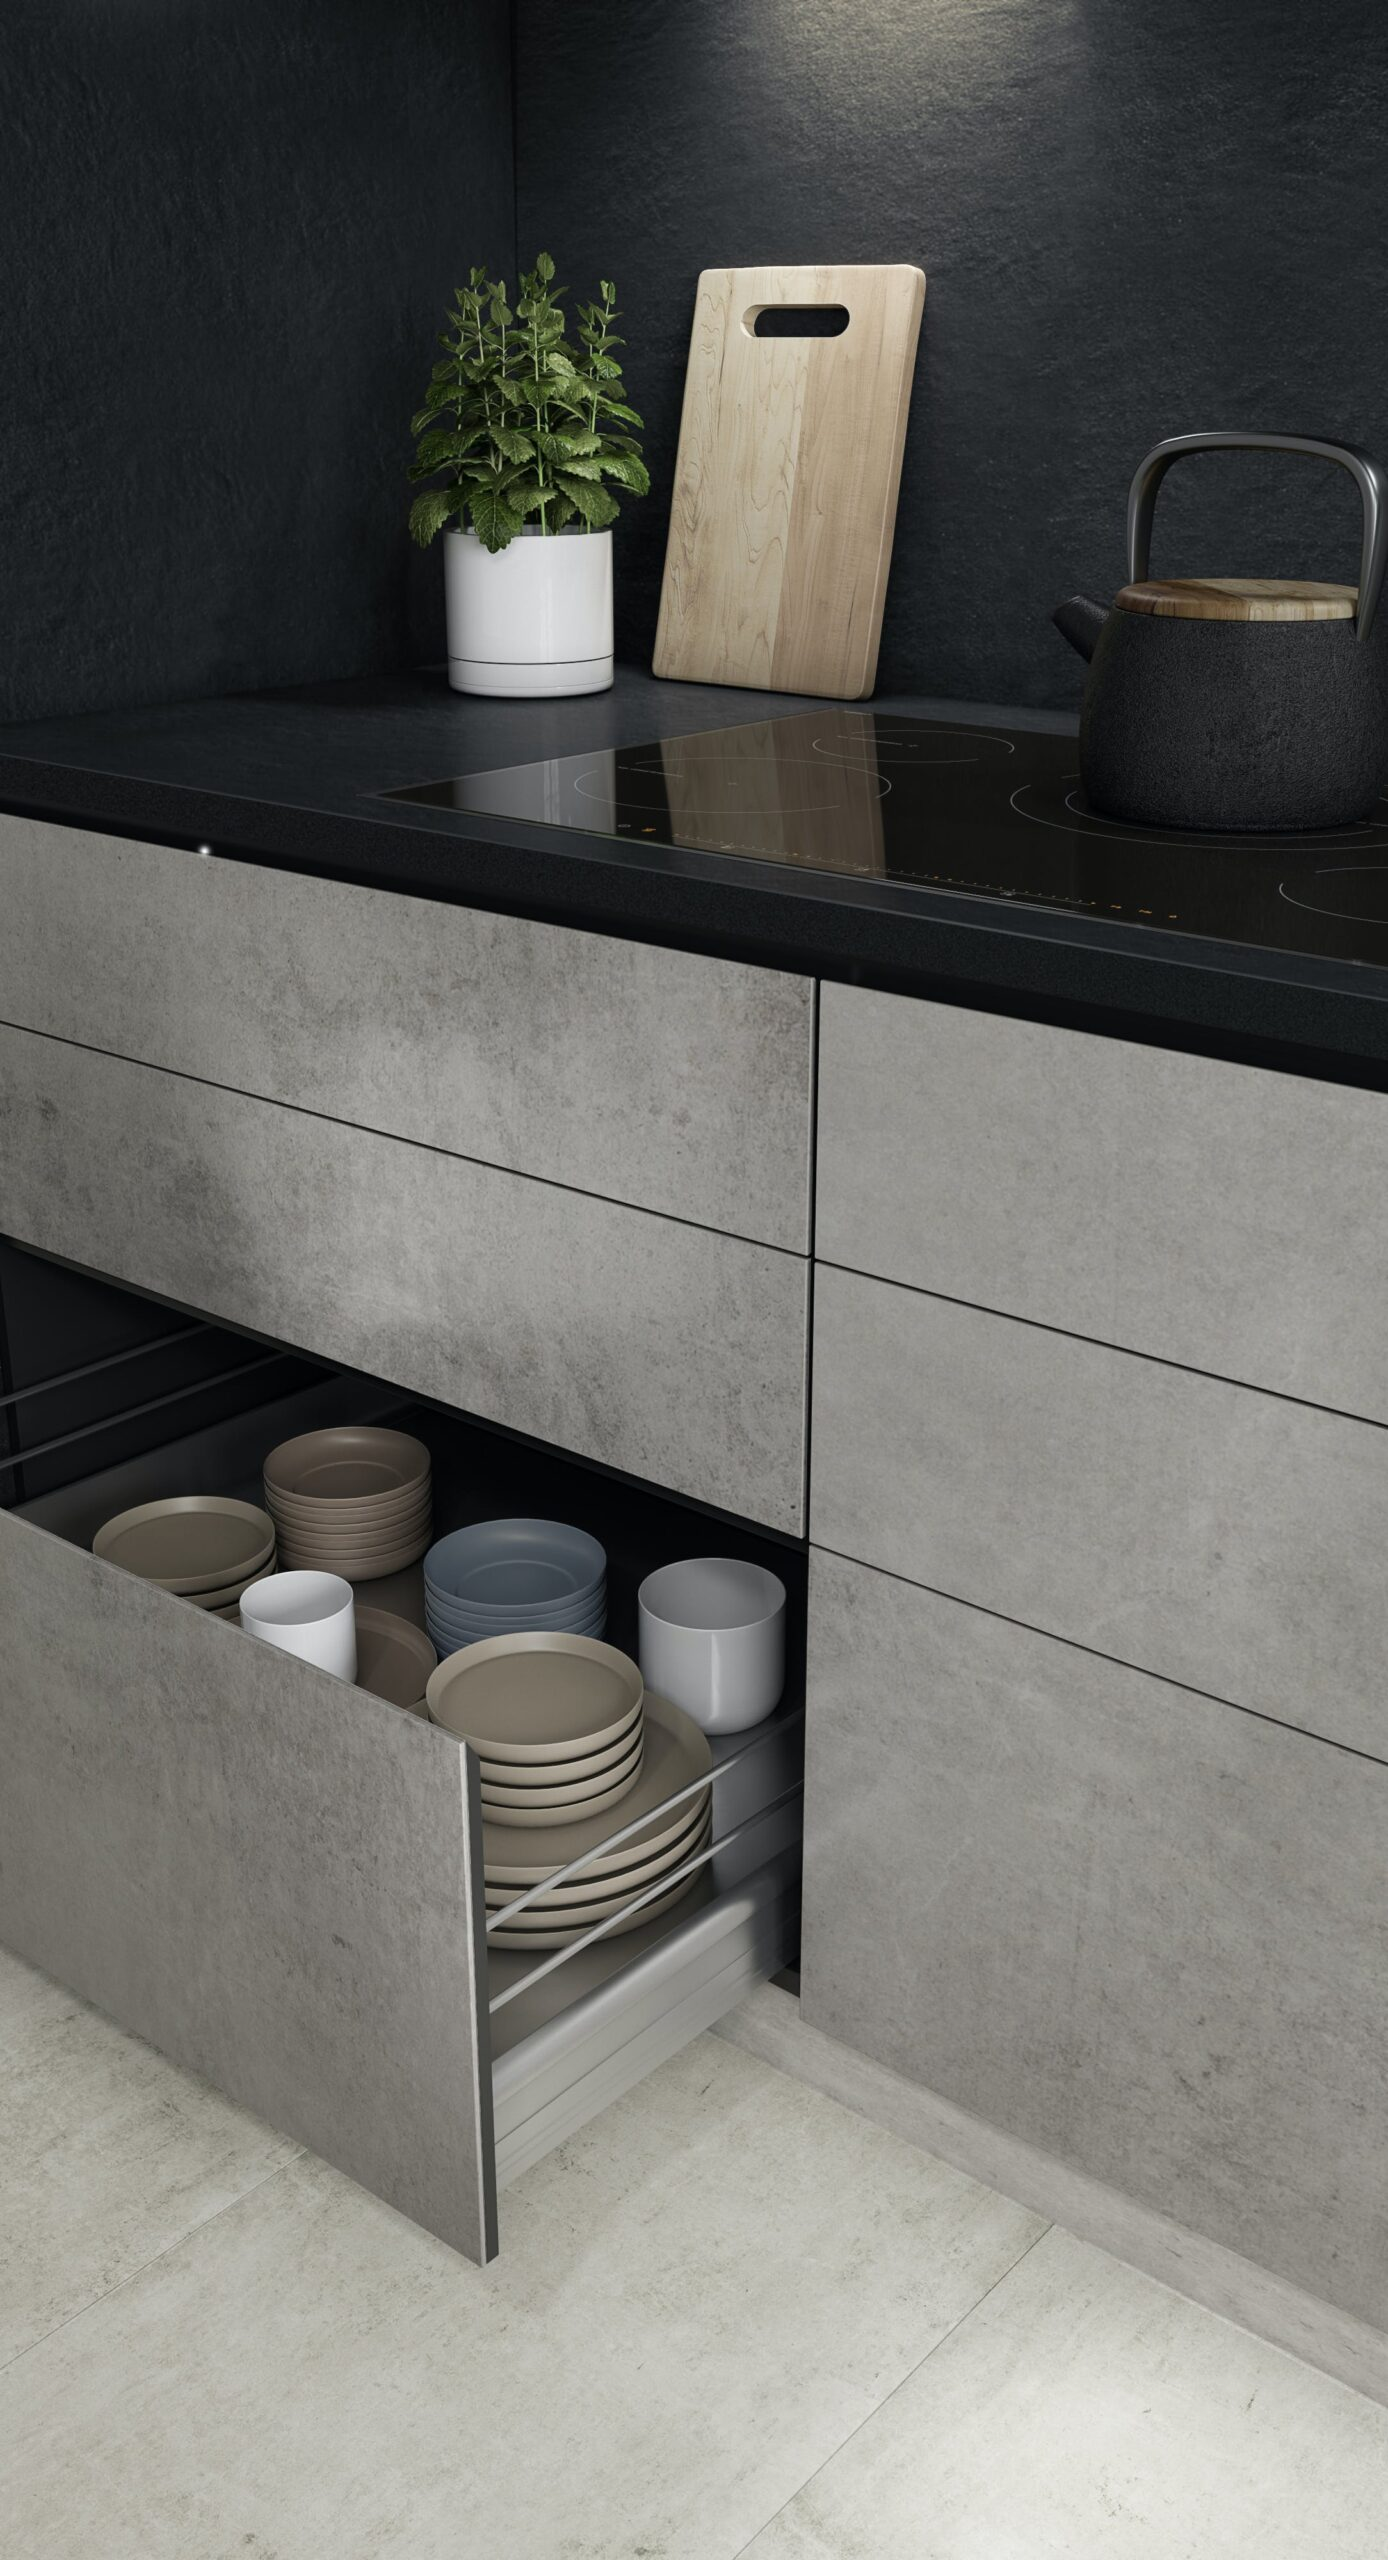 Image of AMBIENTE 05 COCINA CAJON ABIERTO 1 scaled in Compact kitchens: Who says they're a disadvantage? - Cosentino